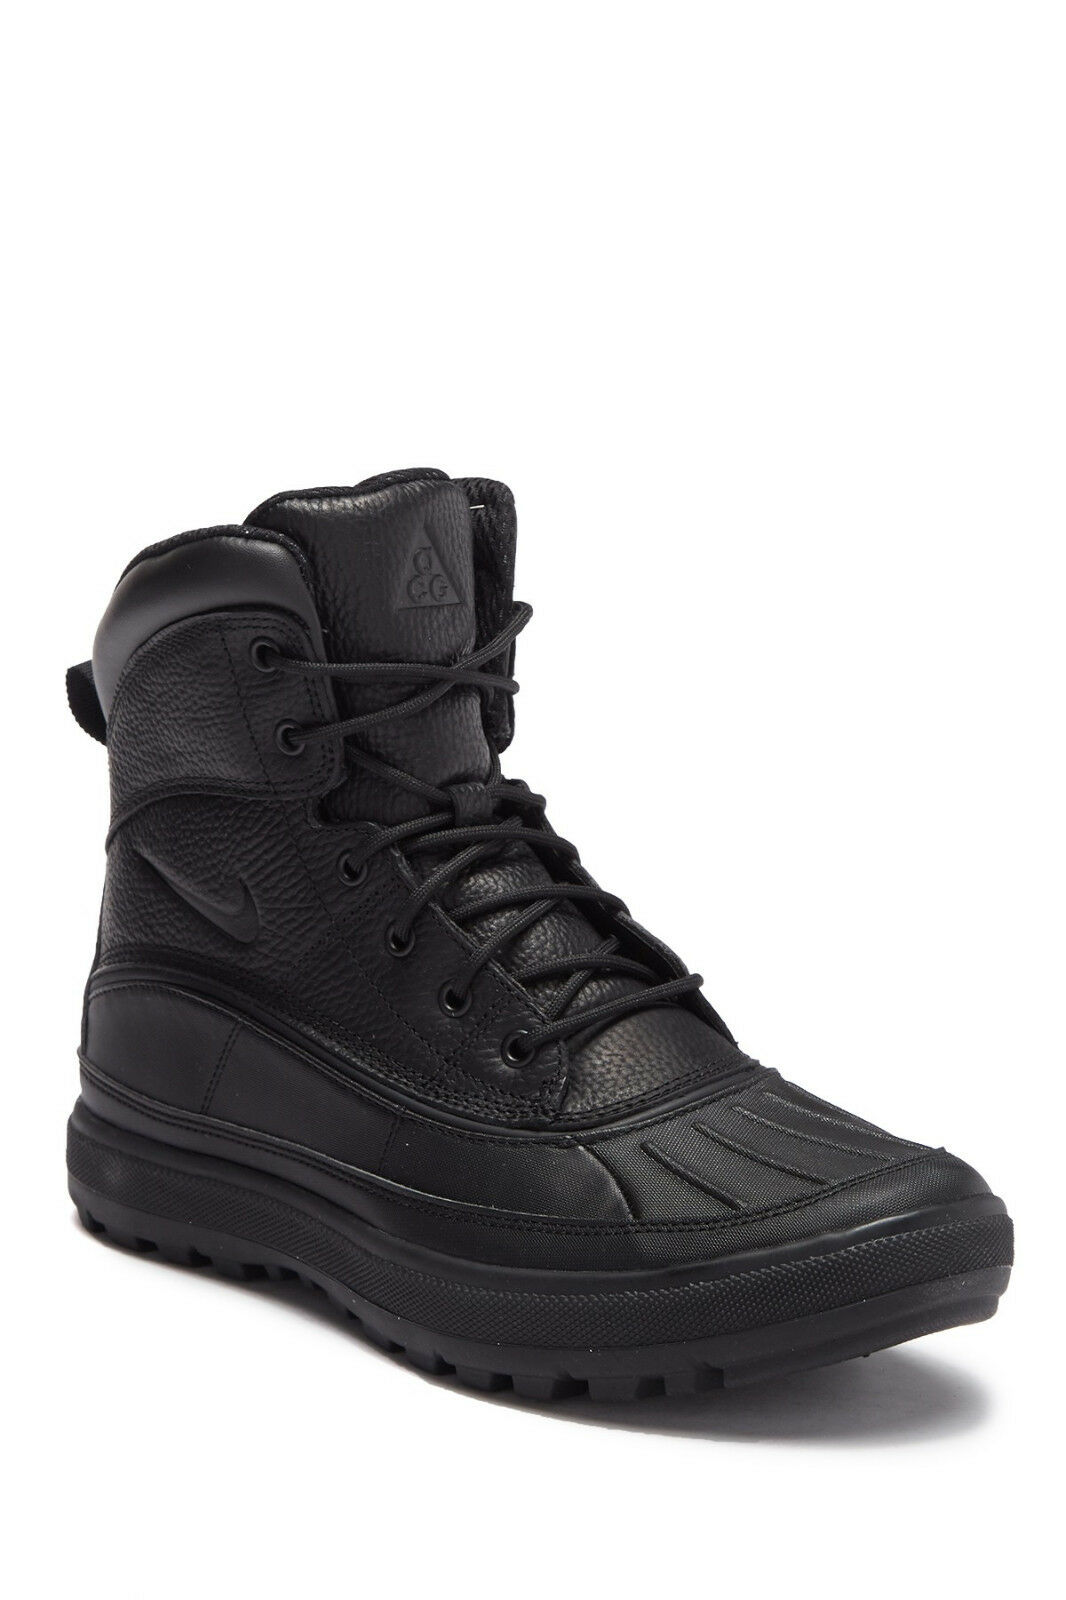 Nike ACG Woodside II 2 Leather High Winter Boots Black 525393-090